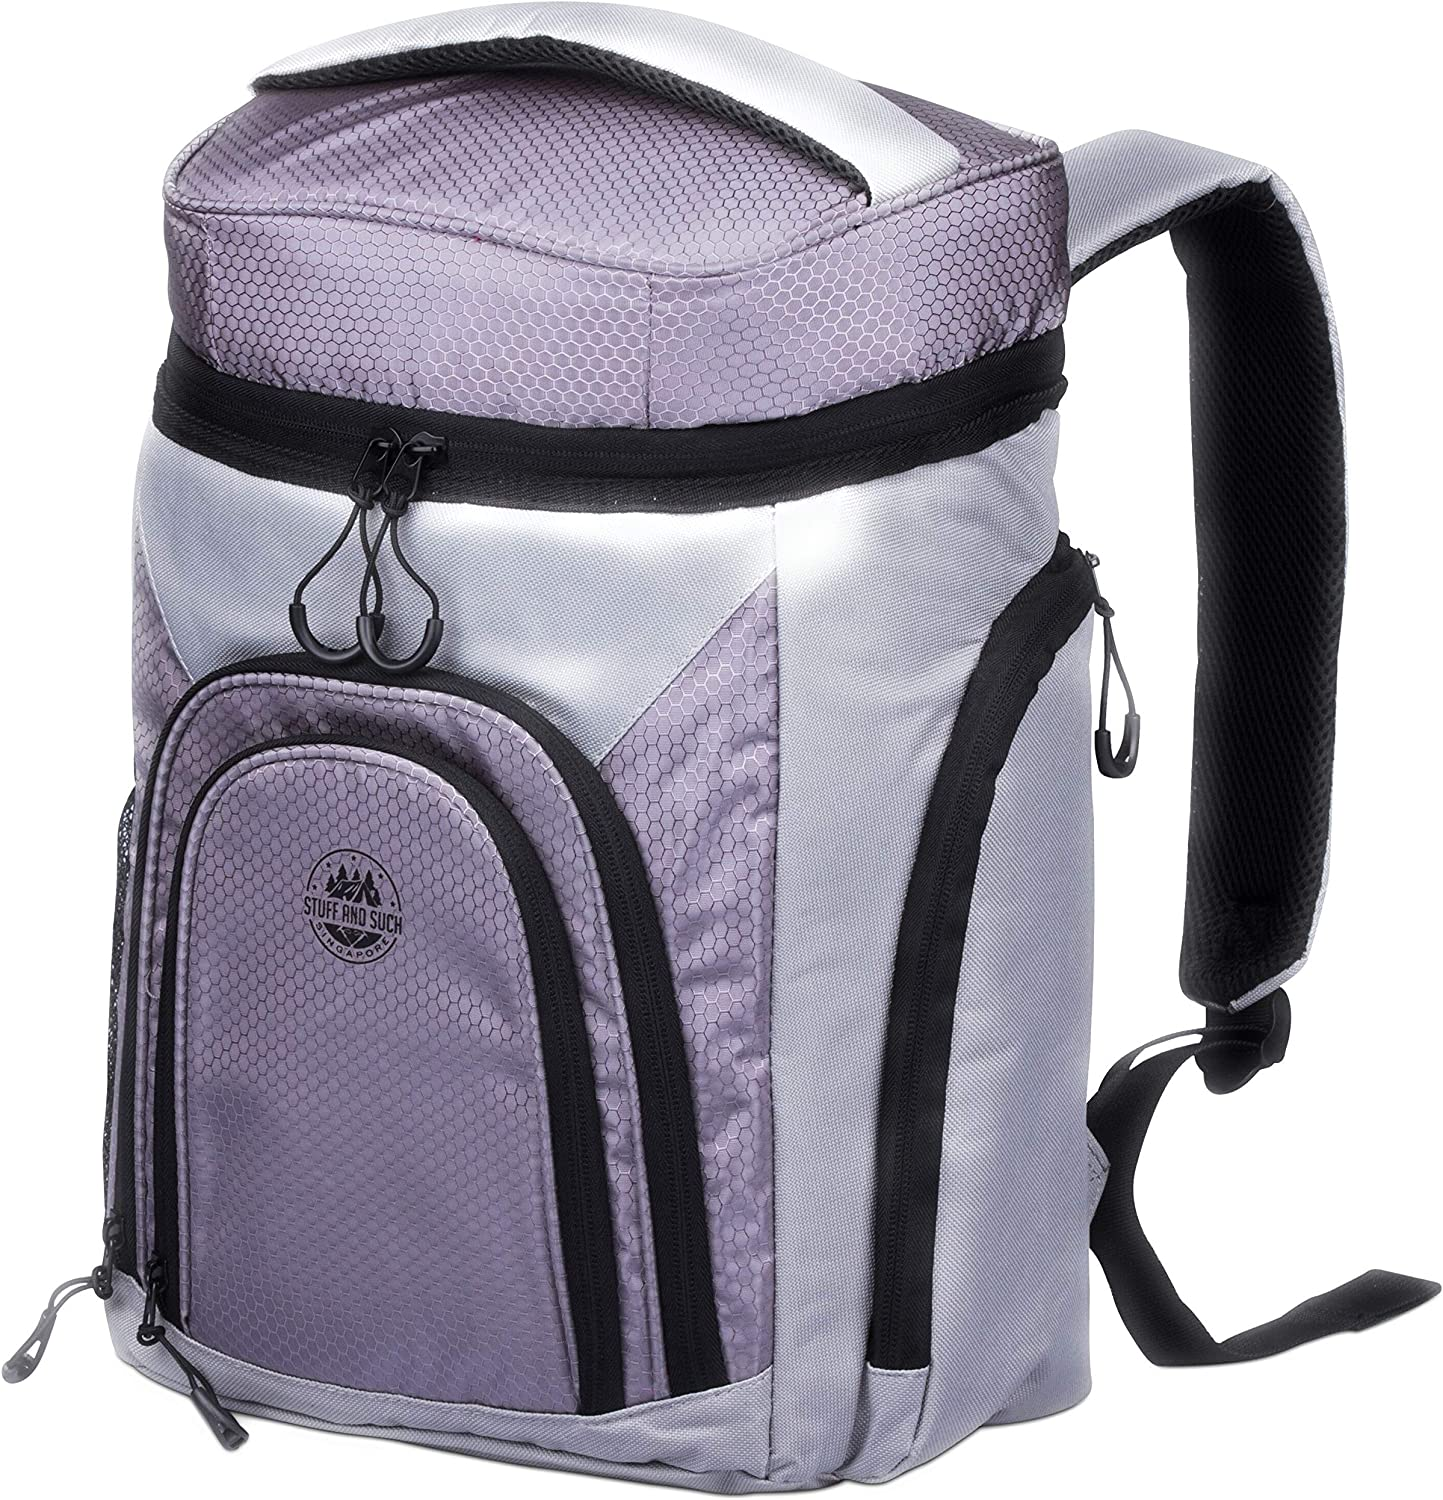 Leakproof Cooler Backpack – with 2 Cooler Compartments for the Outdoors.